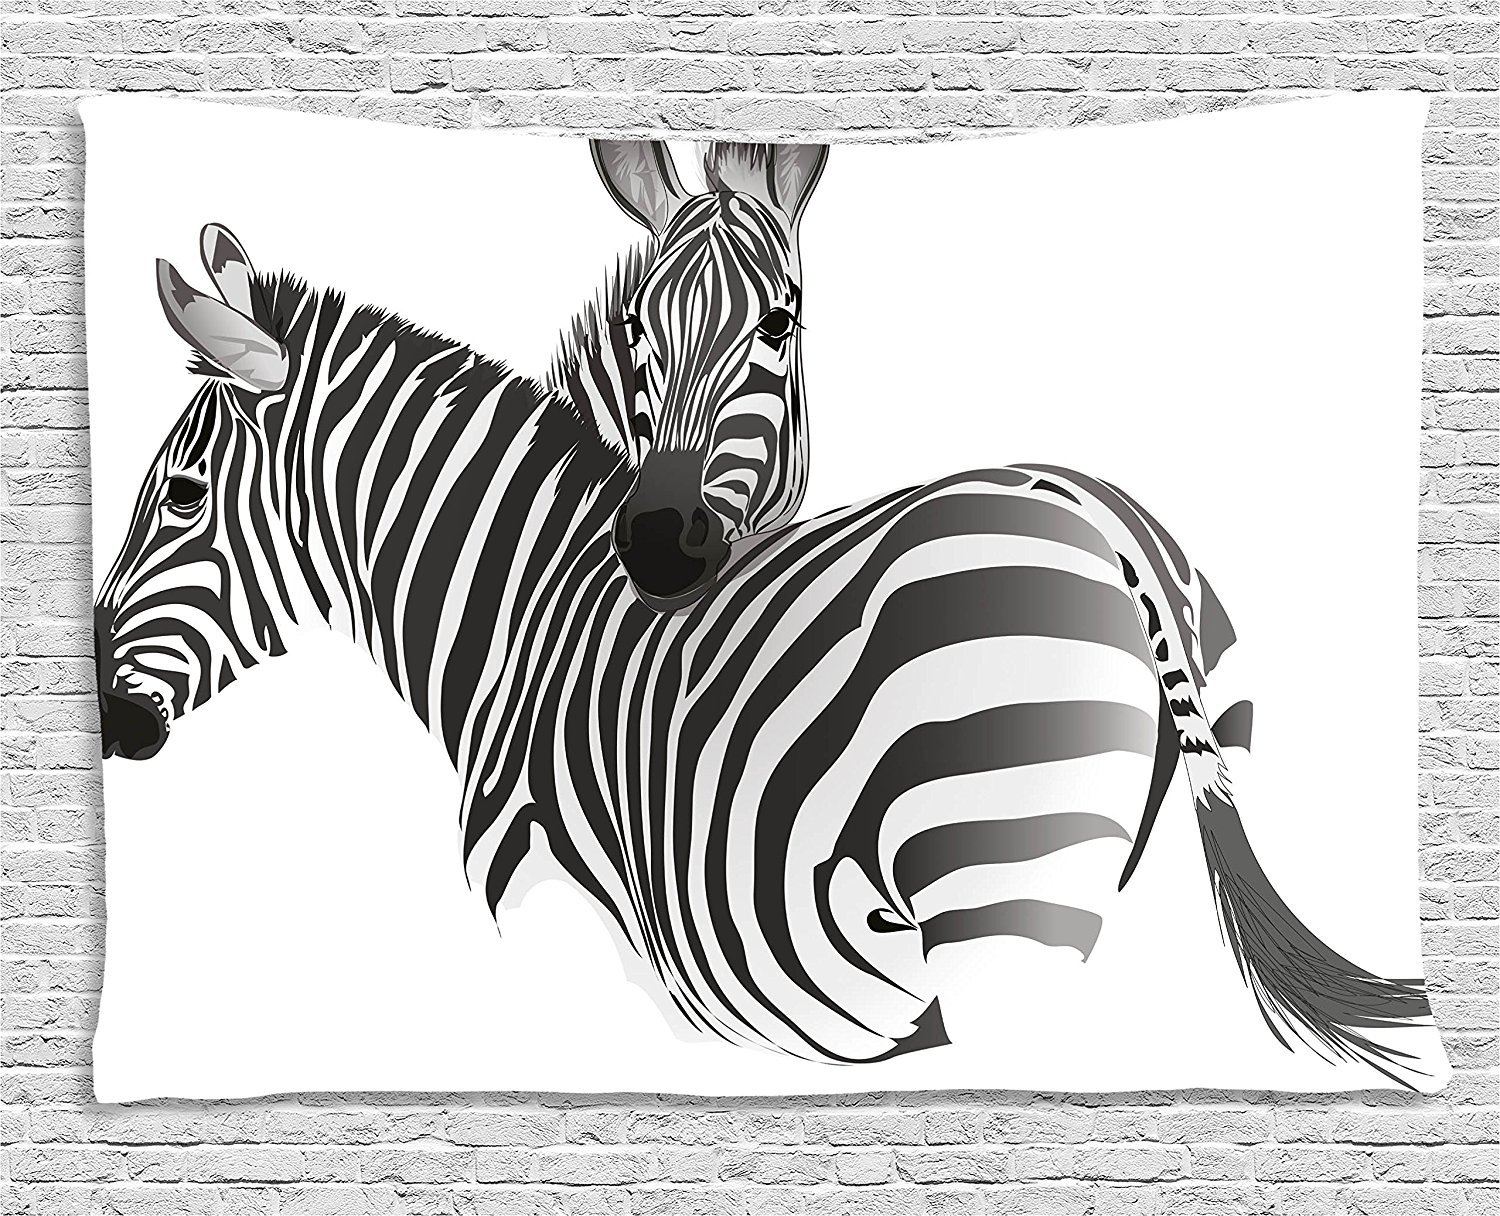 asddcdfdd Zebra Tapestry, African Animals Cute Couple Safari Theme Savannah Jungle Camouflage Exotic, Wall Hanging for Bedroom Living Room Dorm, 80 W X 60 L Inches, Charcoal Grey White